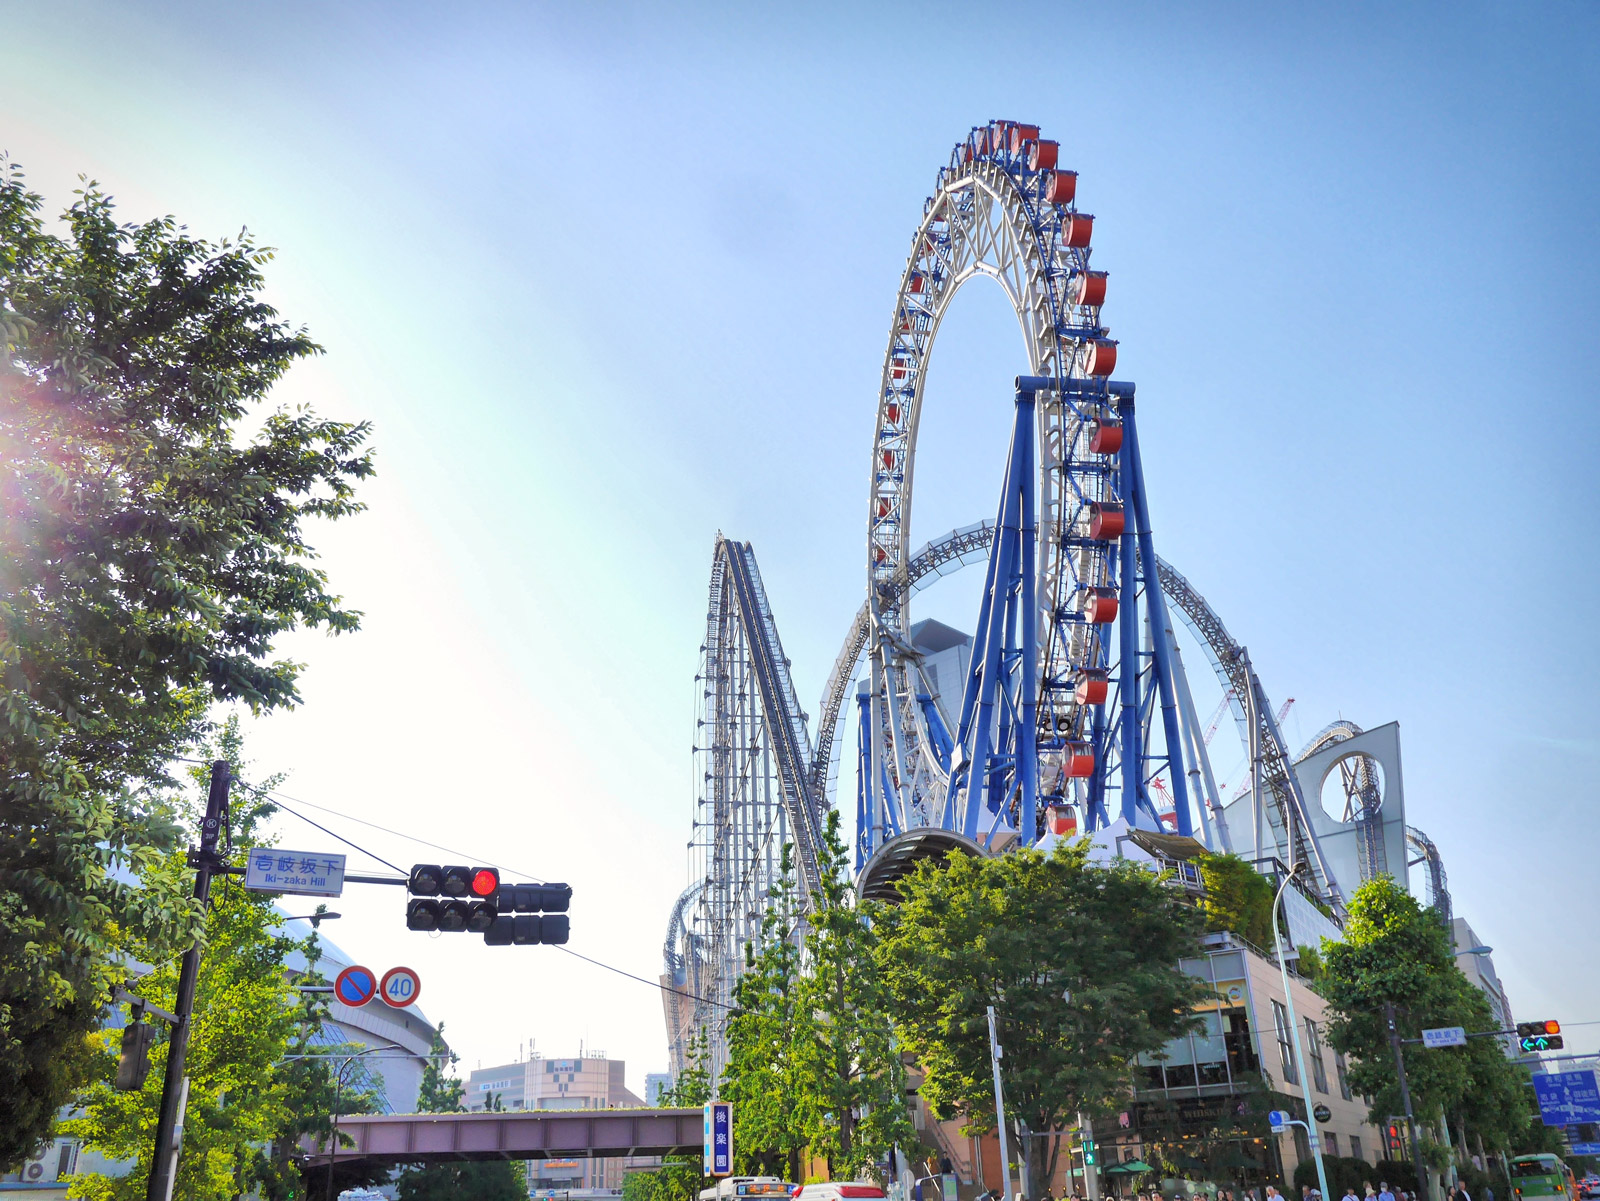 Dome City: Ride the 130km/h Thunder Dolphin Roller Coaster - Tokyo, Japan